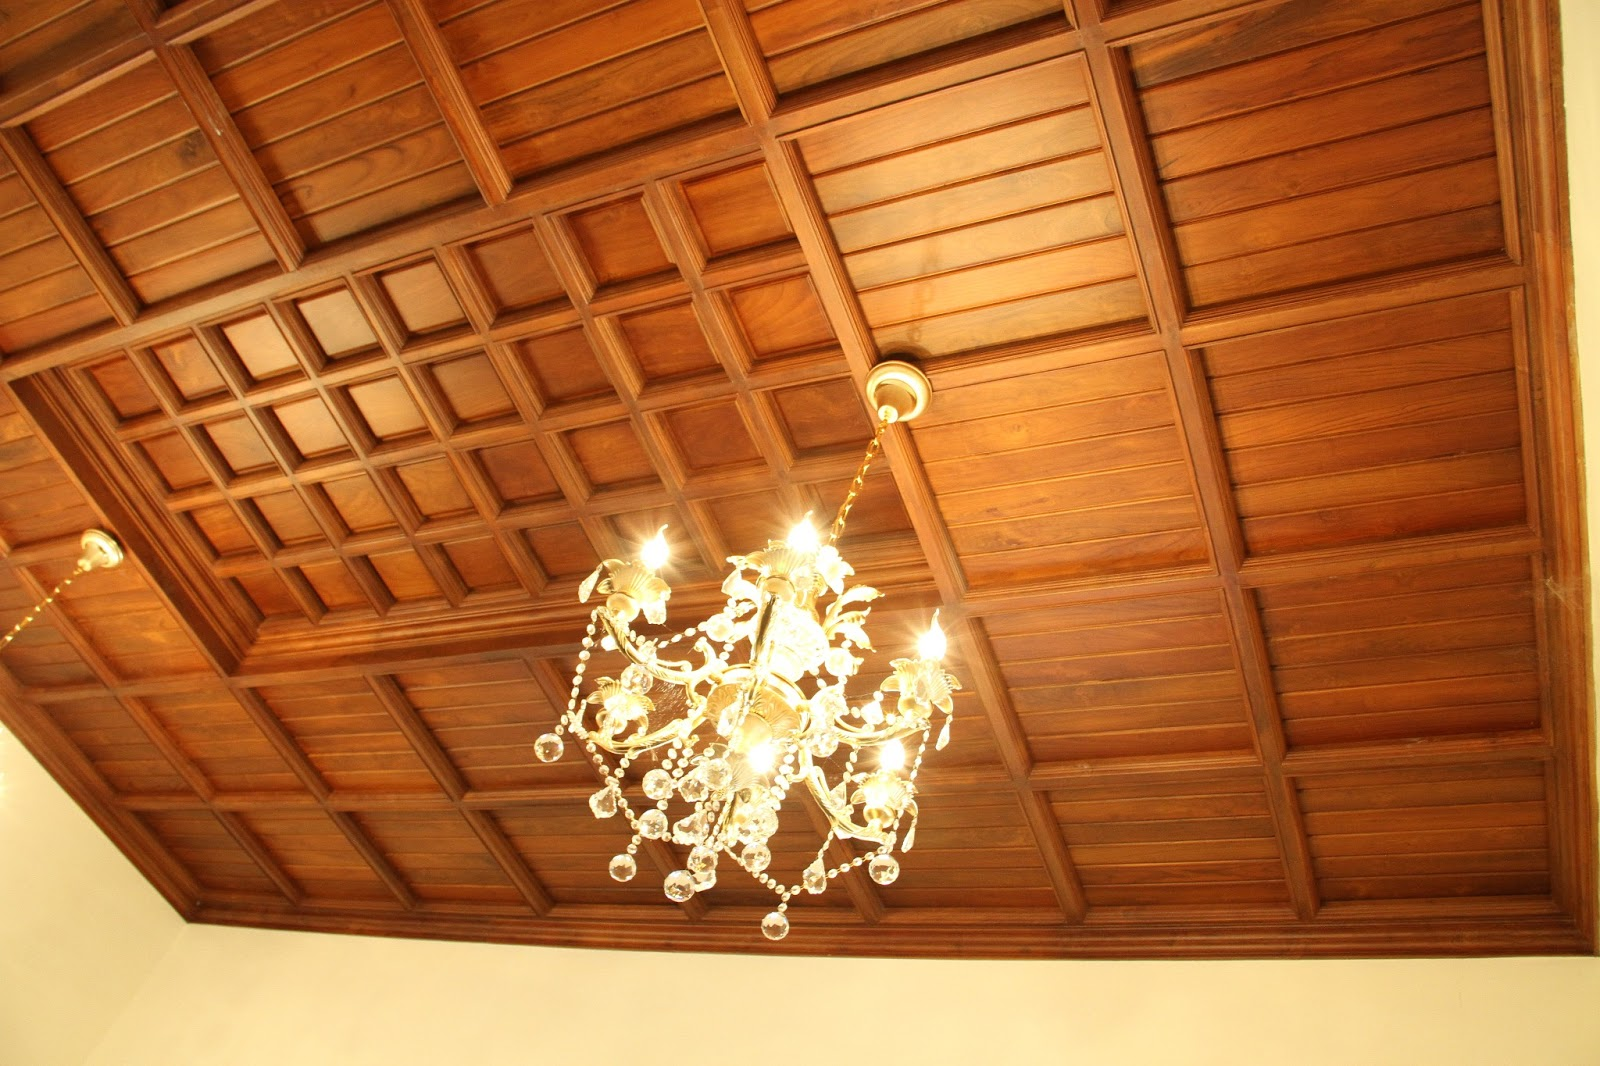 Superb img of Wooden Ceiling: with #4B1804 color and 1600x1066 pixels